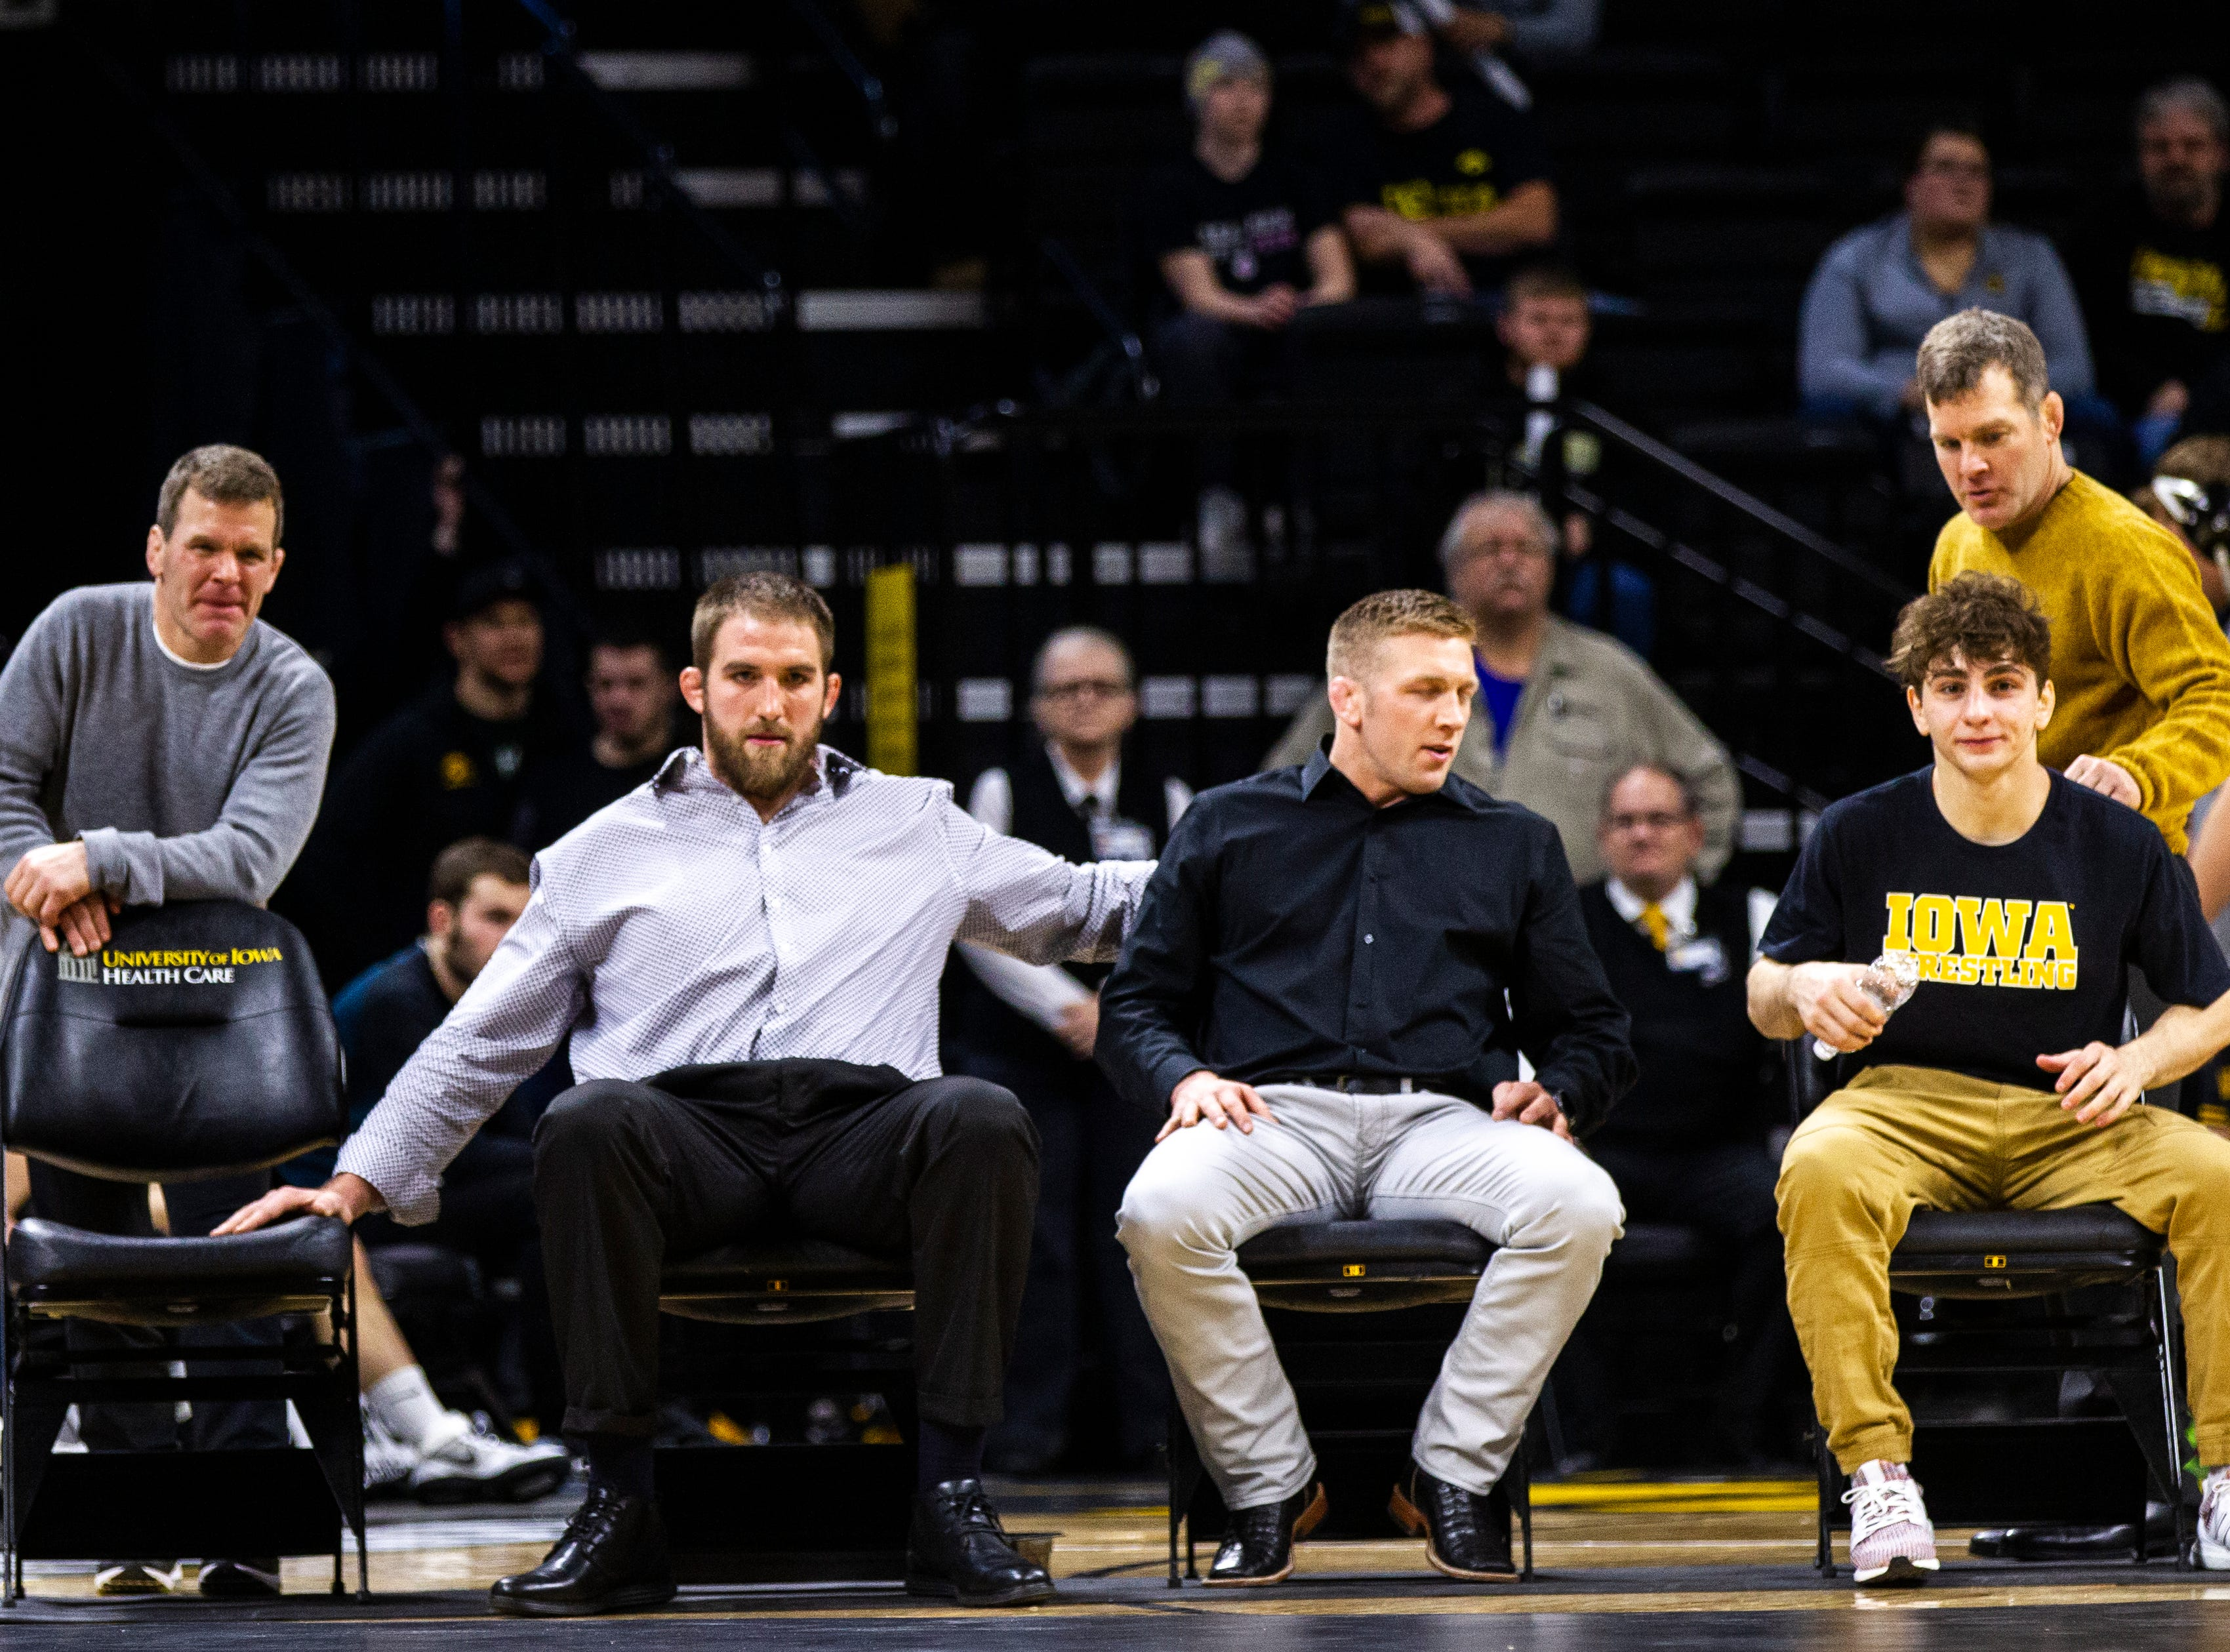 Iowa's Terry Brands, Bobby Telford, Ryan Morningstar and Tom Brands invite Austin DeSanto to the bench during a NCAA Big Ten Conference wrestling dual on Friday, Jan. 18, 2019, at Carver-Hawkeye Arena in Iowa City, Iowa.